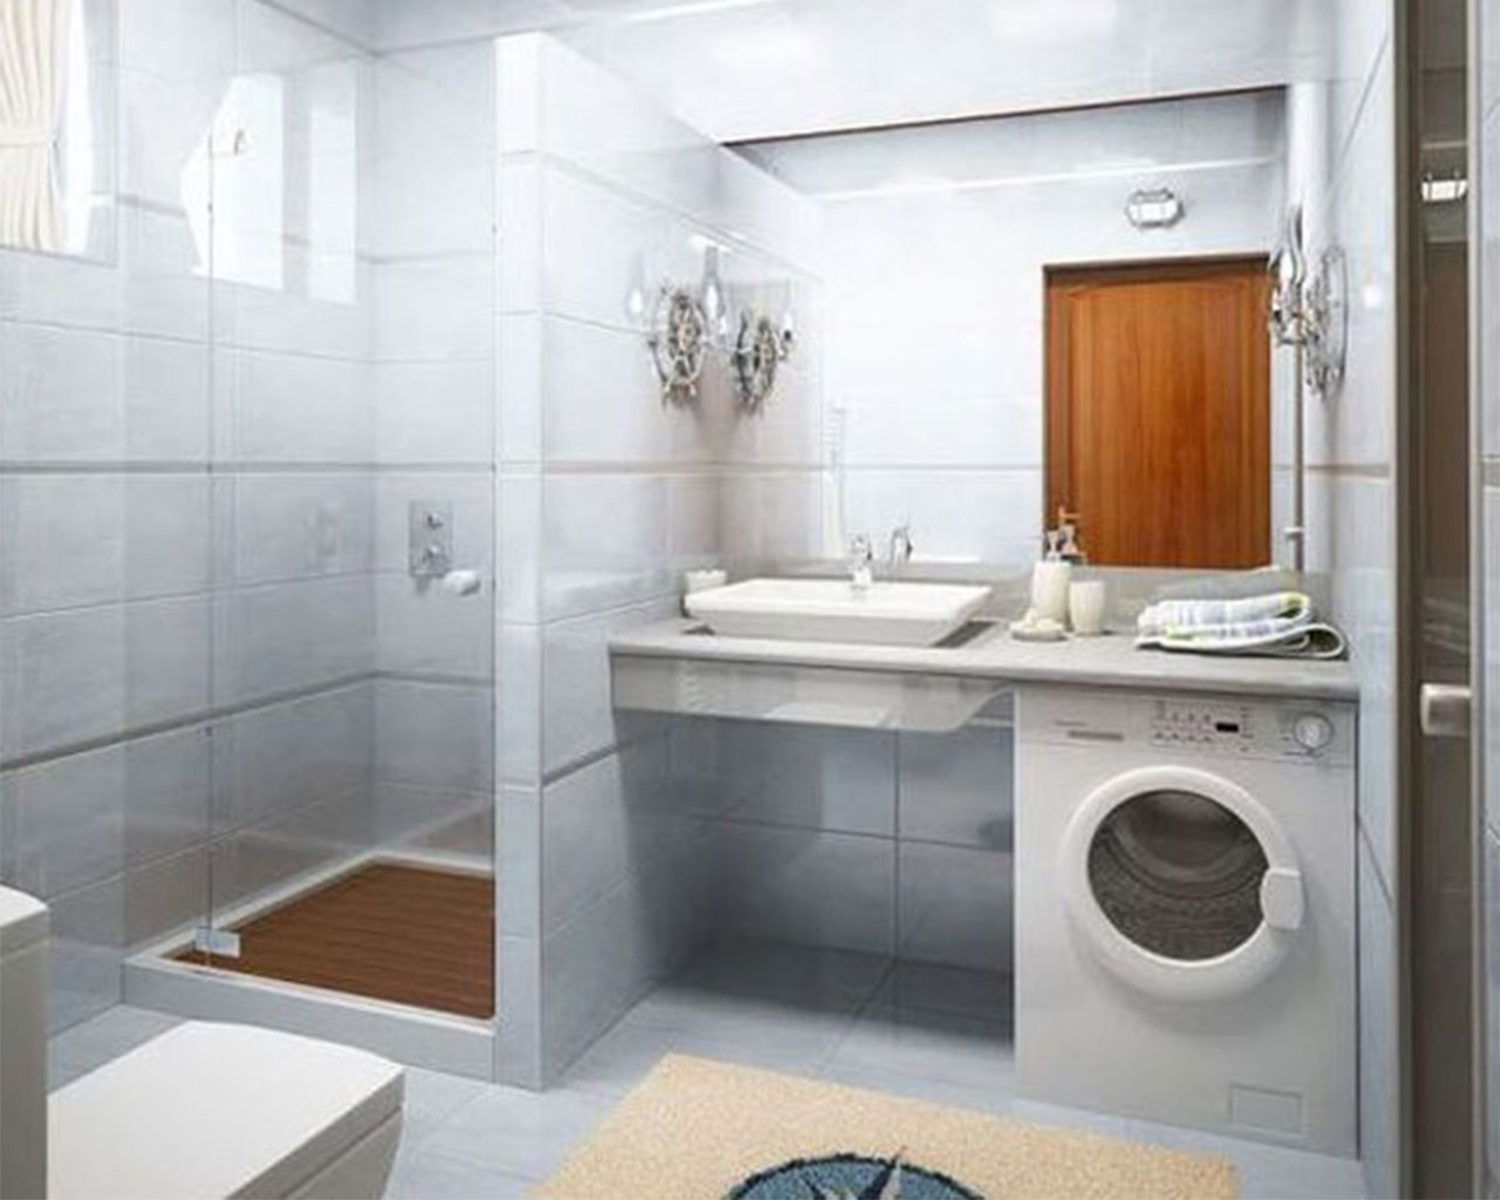 High Quality Simple Bathroom Design Idea With Washing Machine